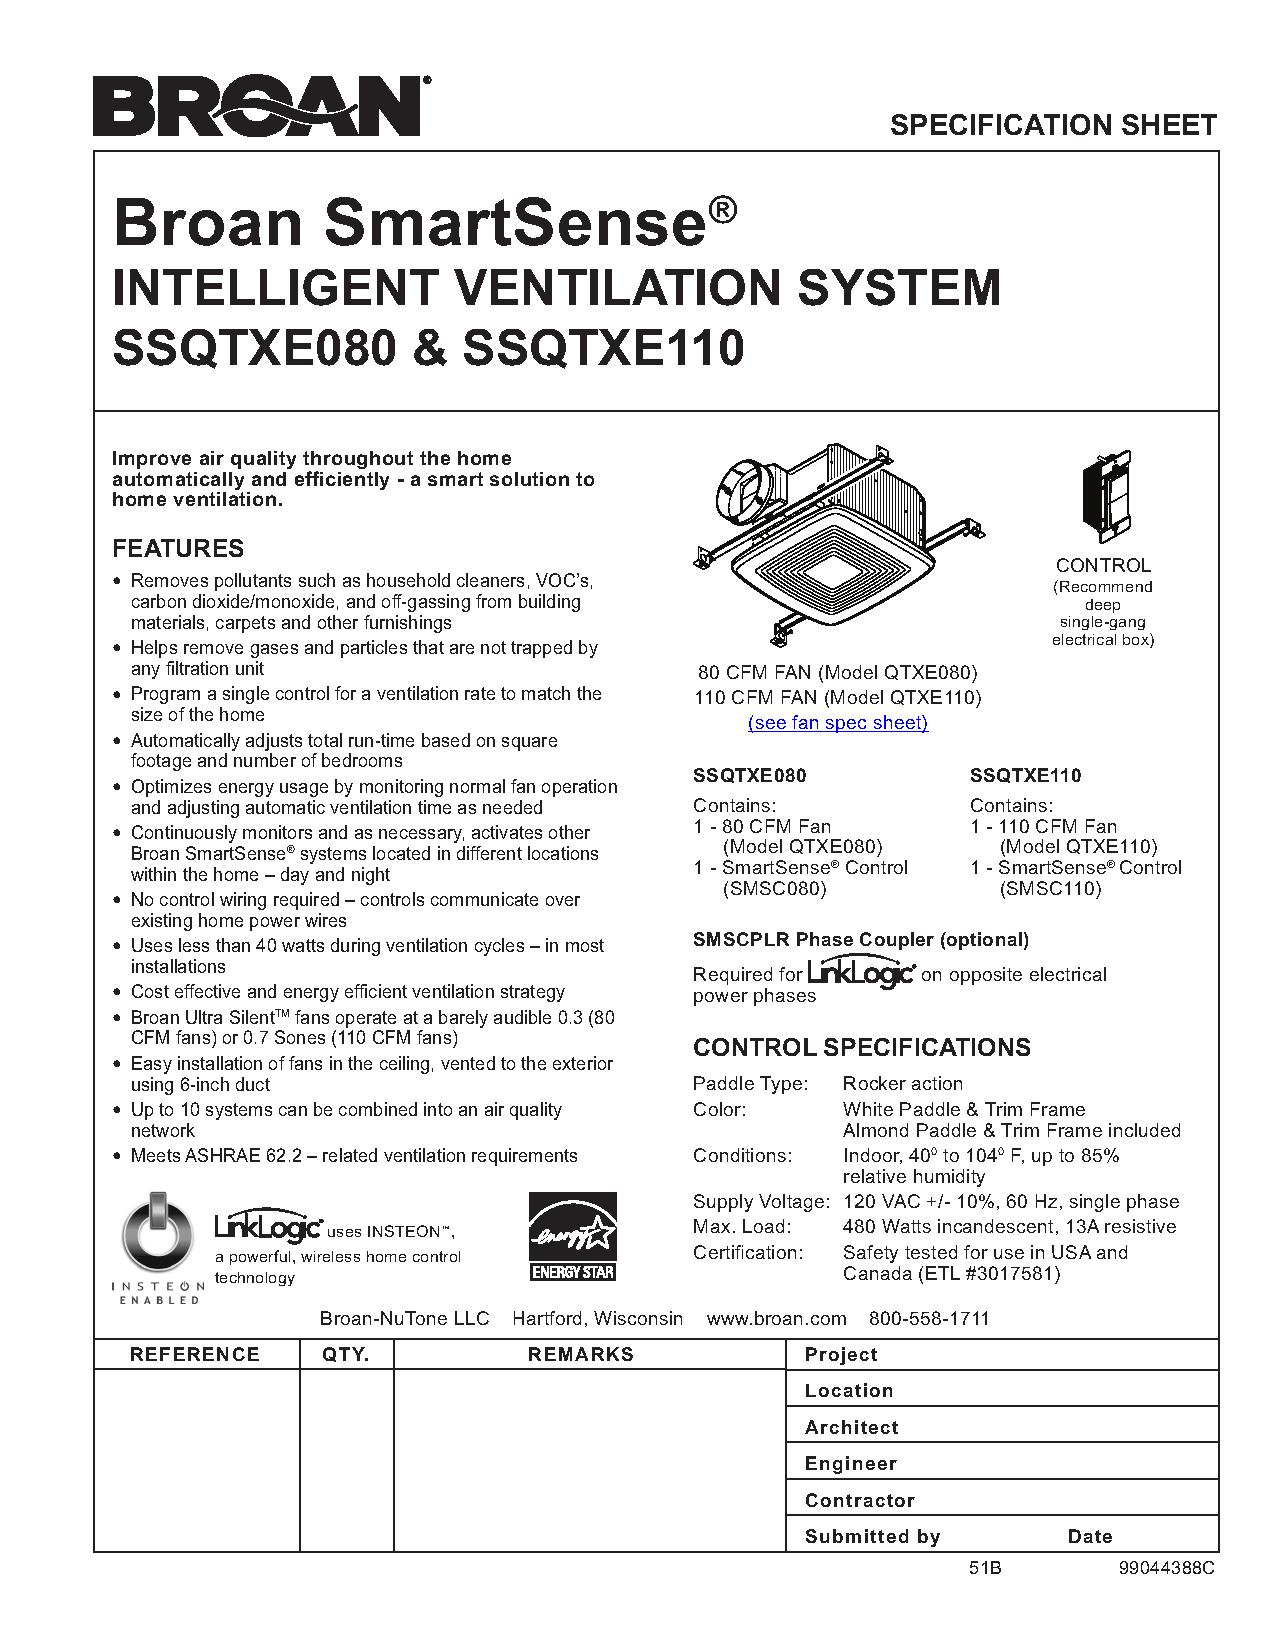 Broan 791led Wiring Schematicled Lights N Fan Diagram Smartsense Spec Sheet Light With Led Lighting Ajb Sales At